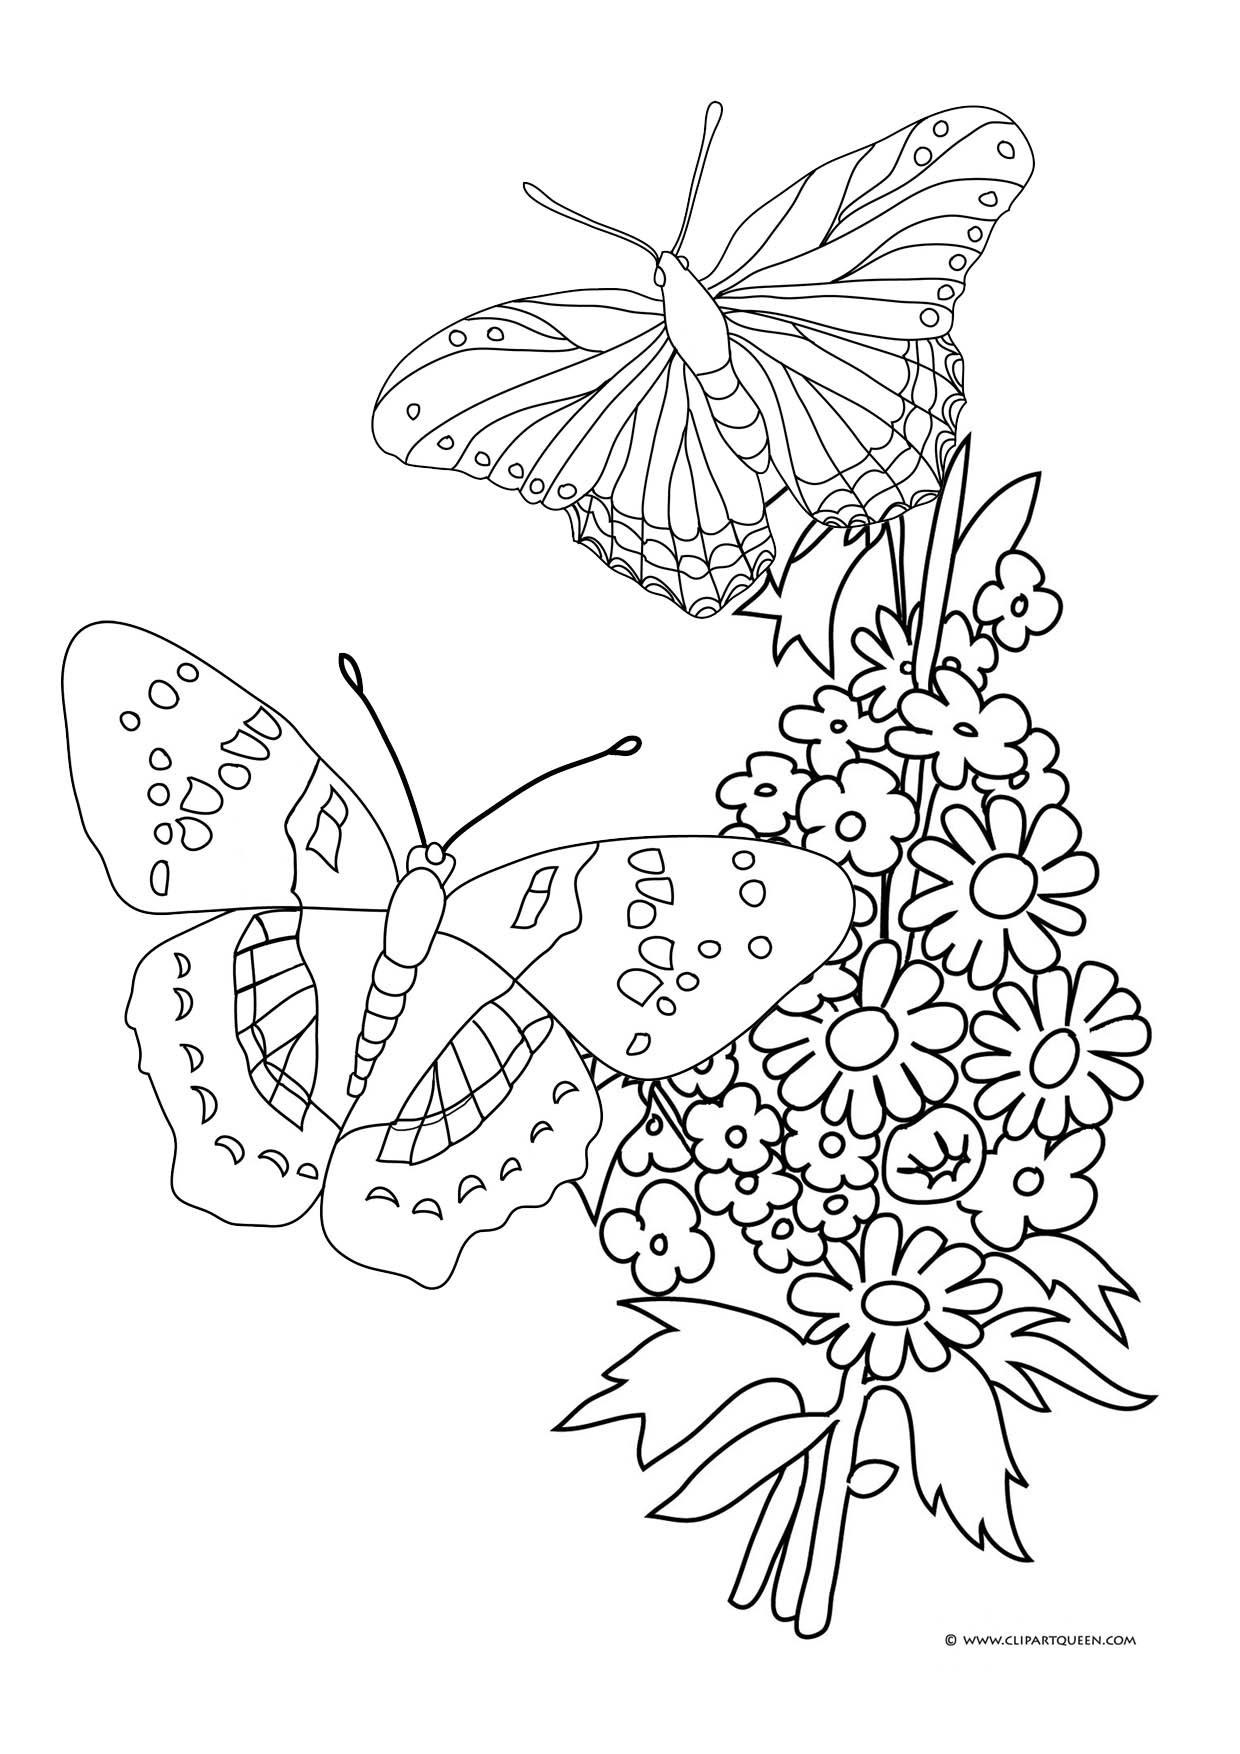 Flowers And Butterflies Drawing At Getdrawings